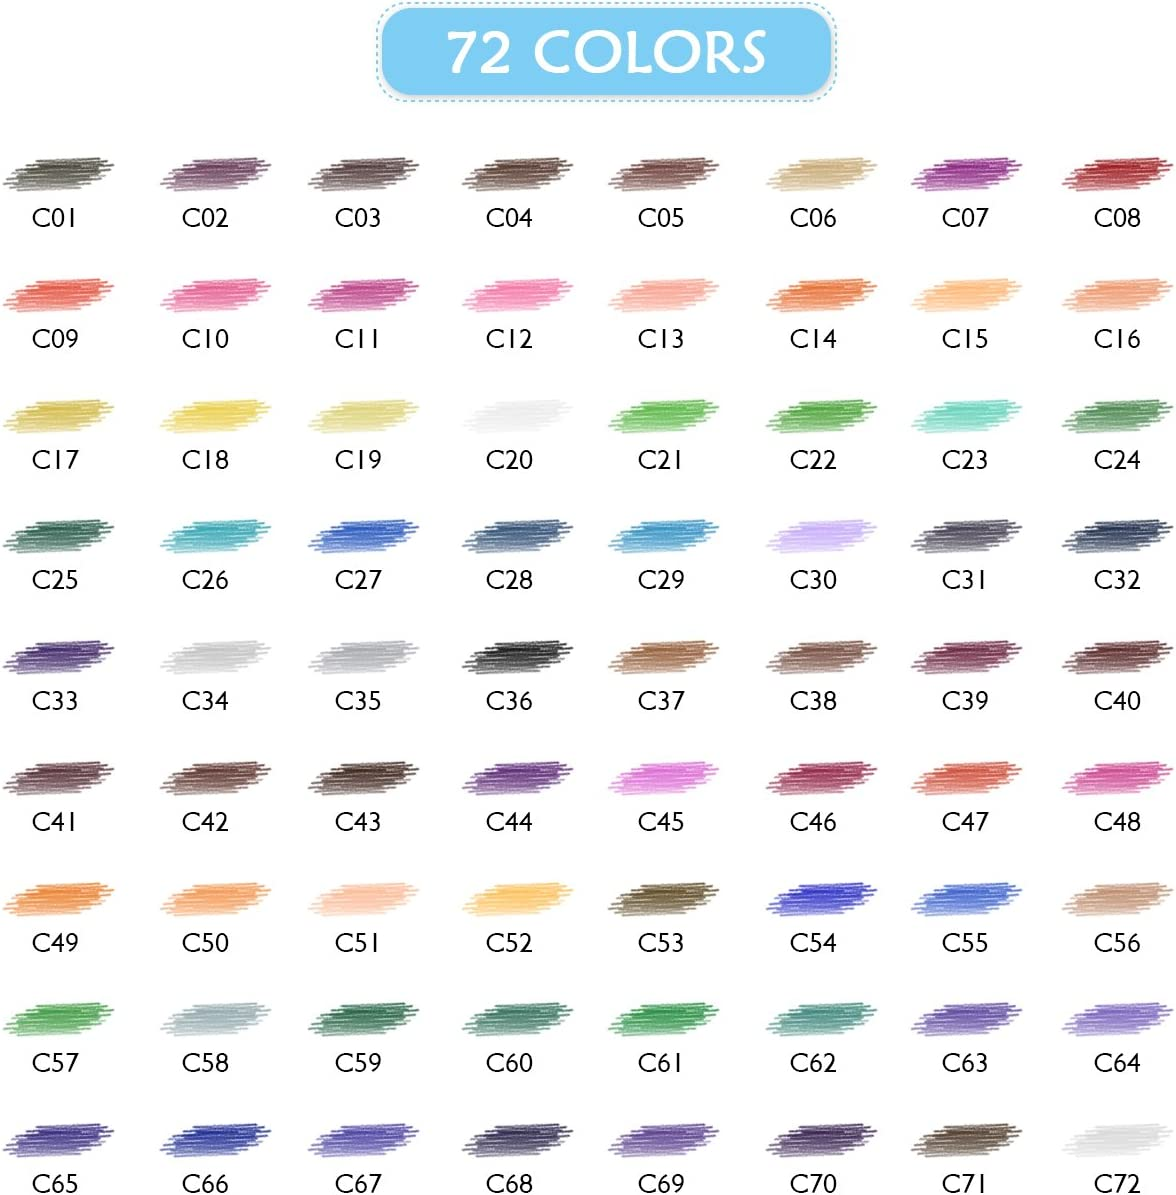 72 Colored Pencils for Adults Pack or Kids Tin Box Package VicTsing Colored Pencils Set Pack of 72 Non-Toxic Oil Based Colouring Assorted Colors